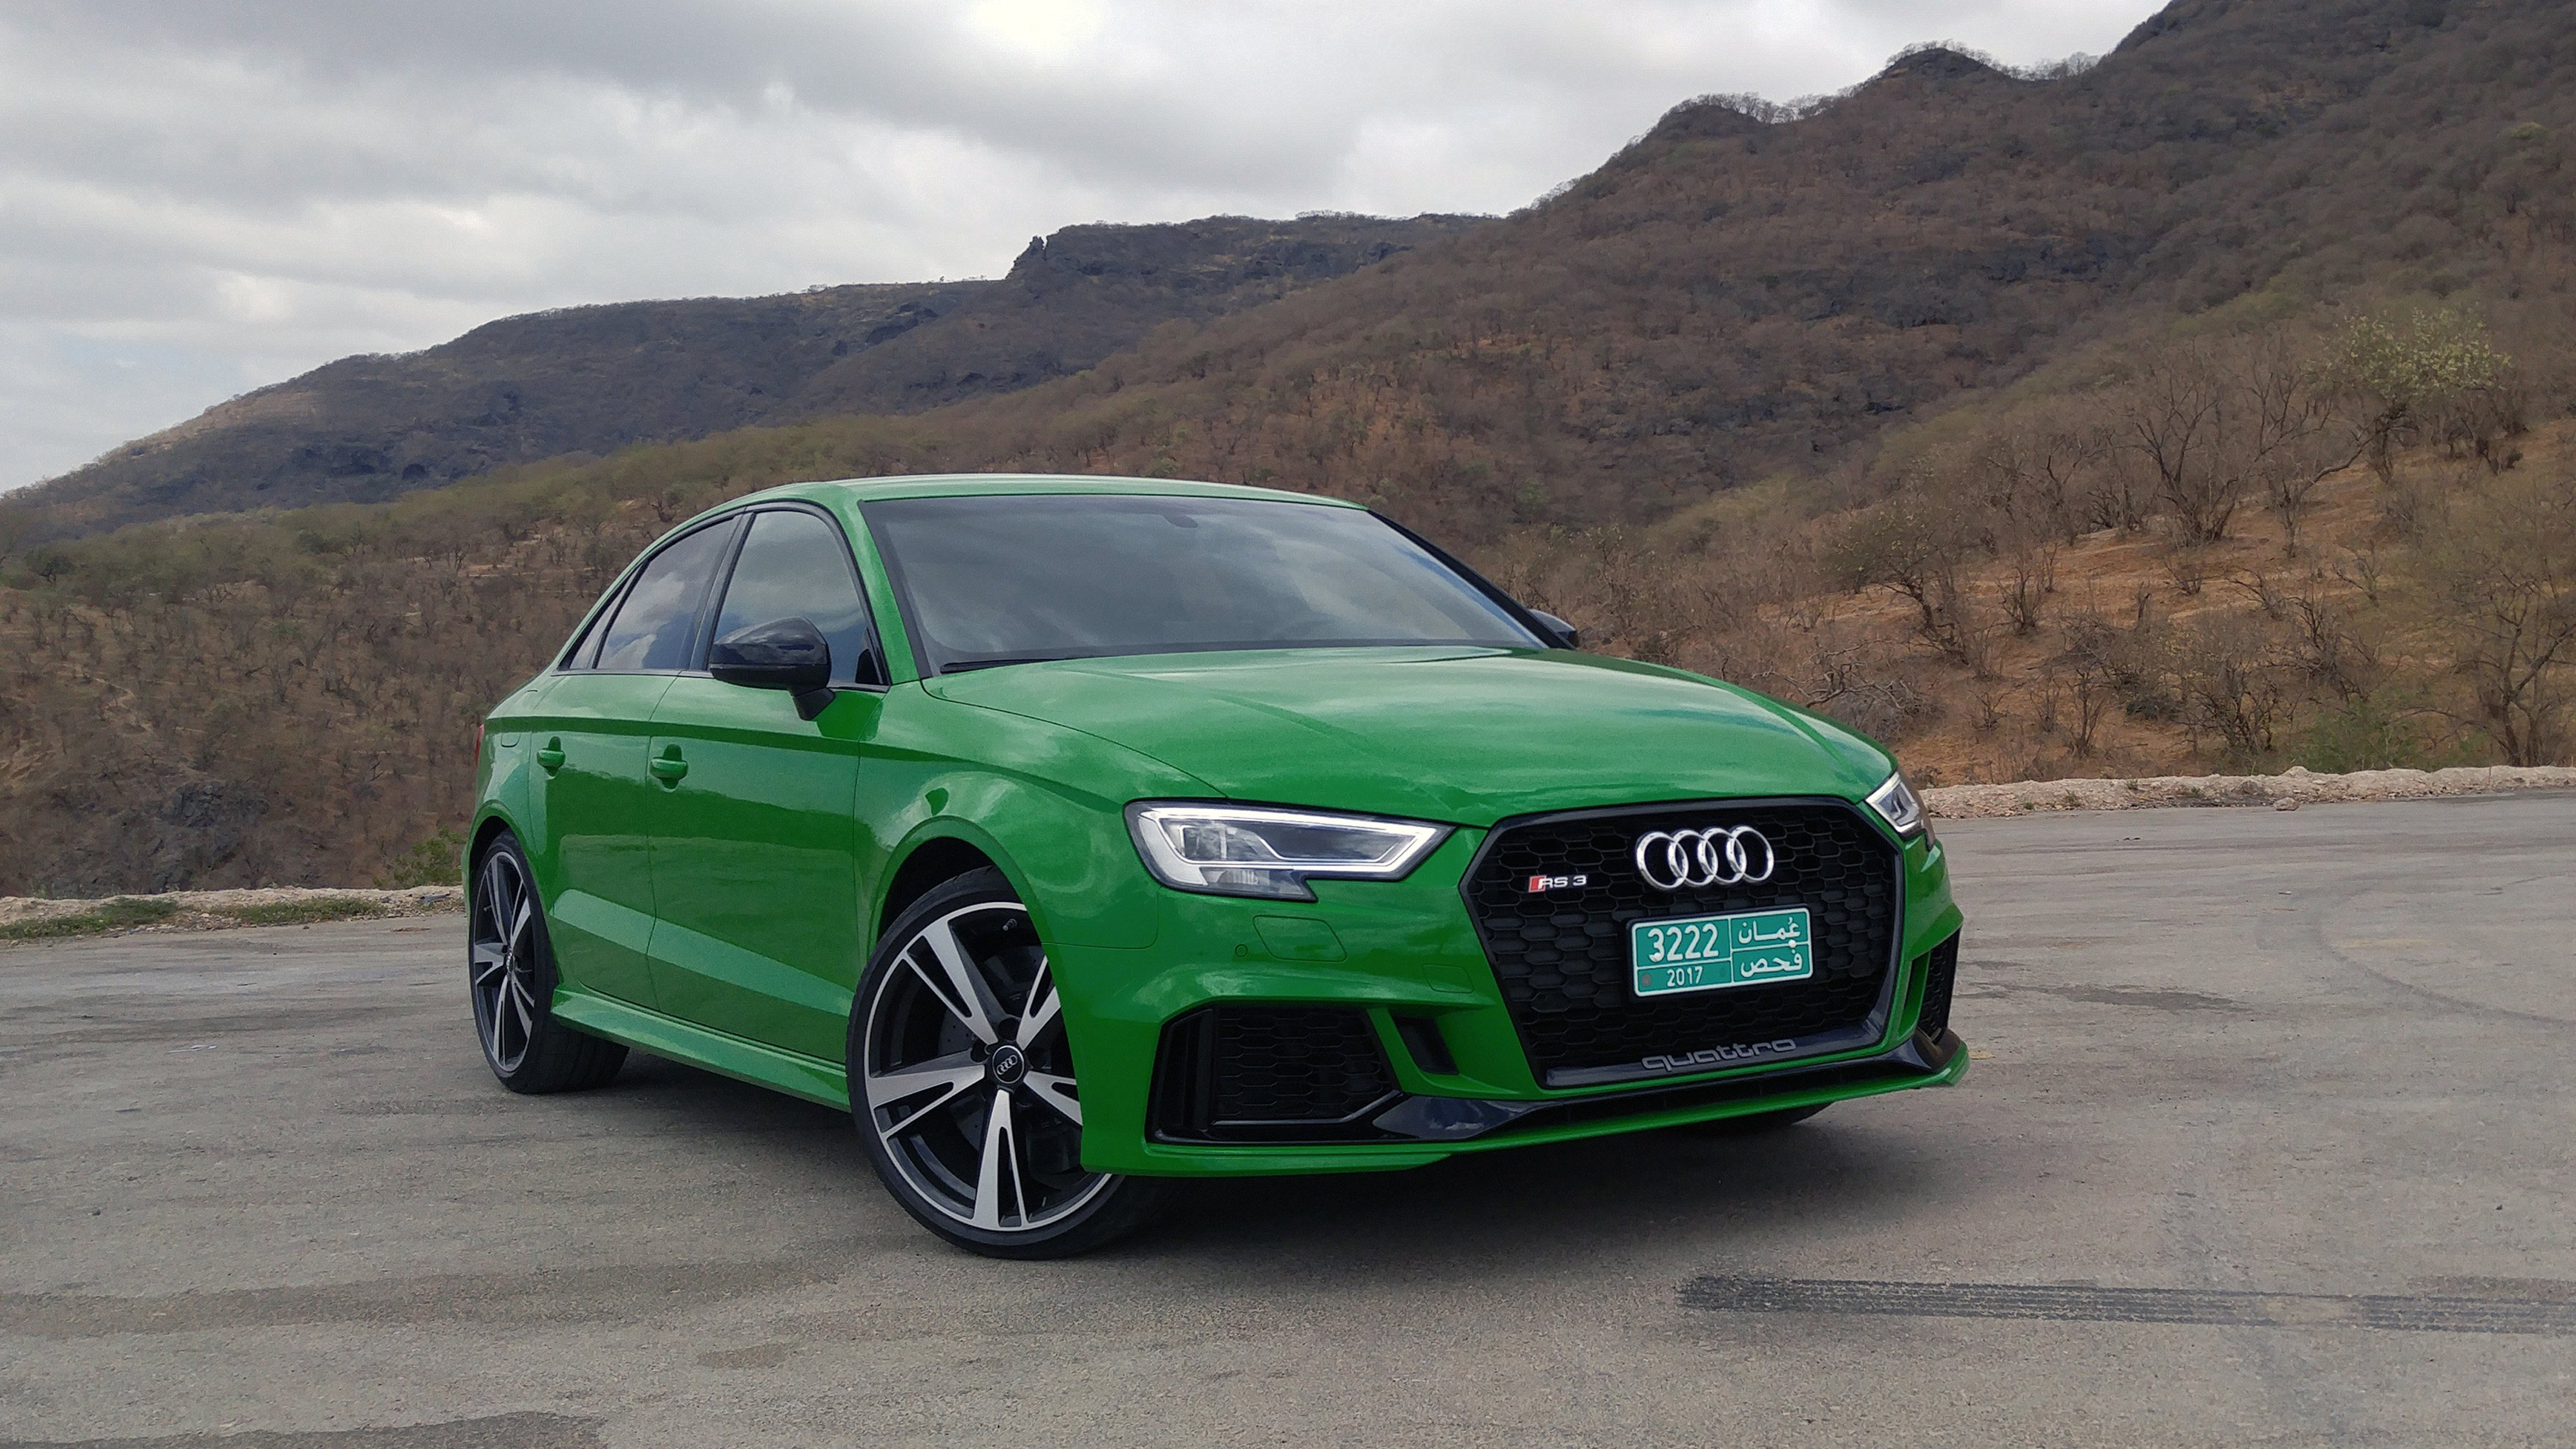 2018 Audi RS 3 Review - AutoGuide.com